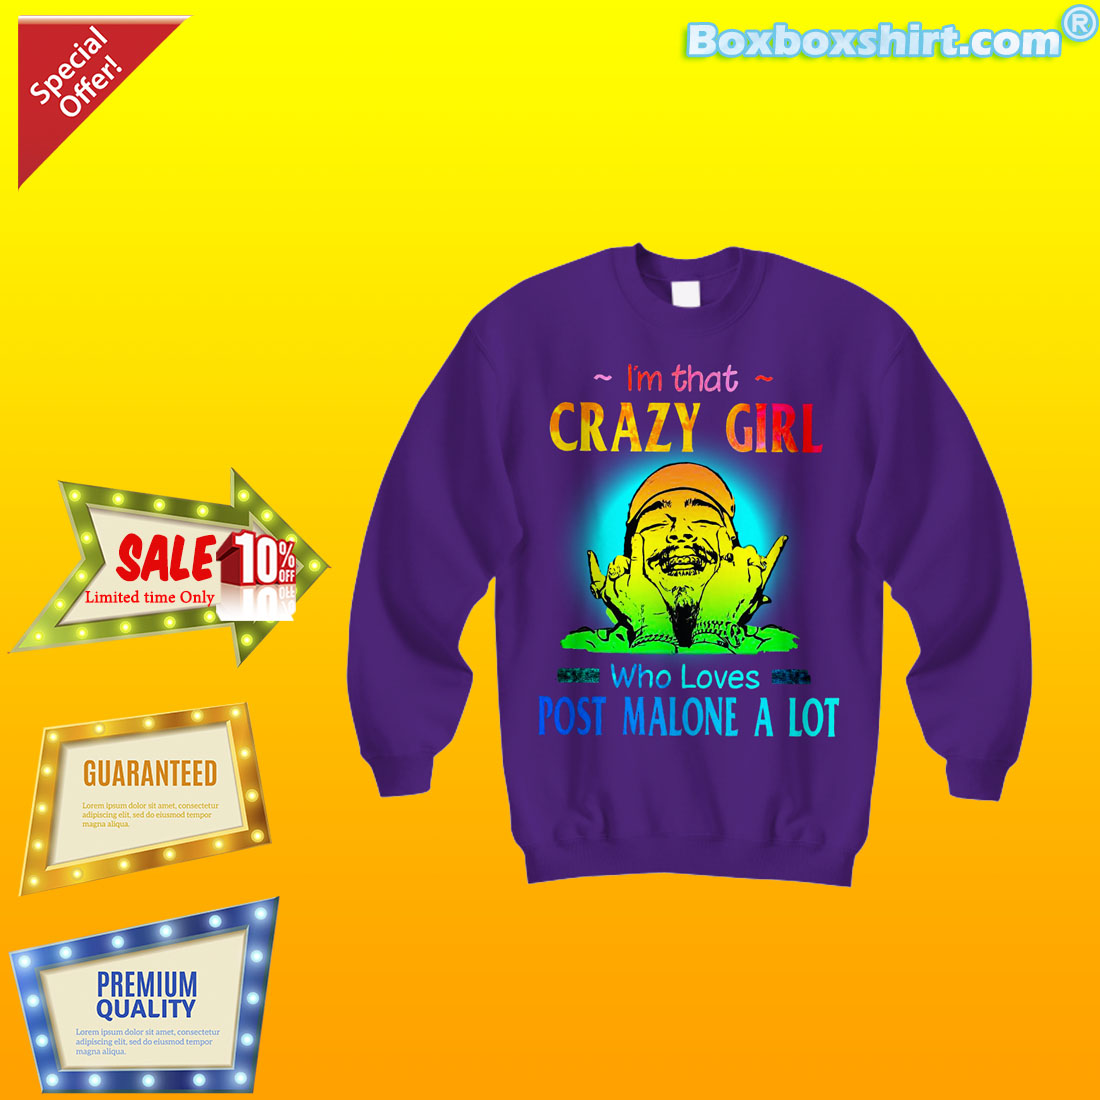 9e000f2d4 I'm that crazy girl who loves Post Malone a lot shirt